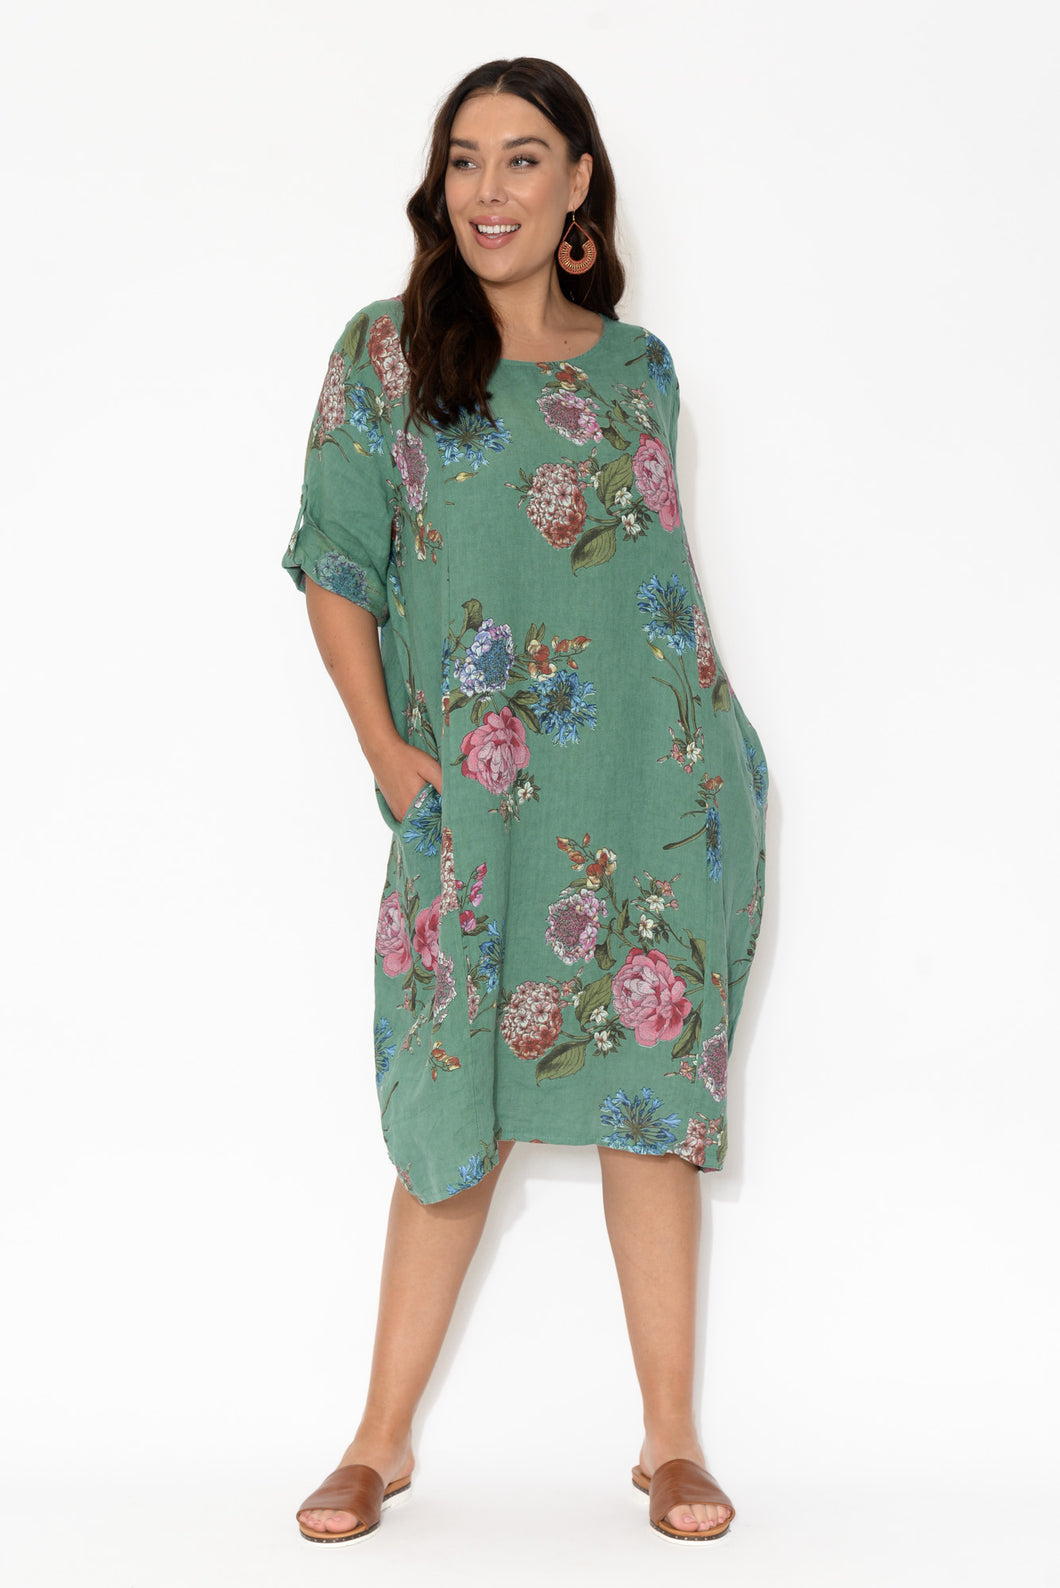 Rowen Teal Wildflower Linen Dress